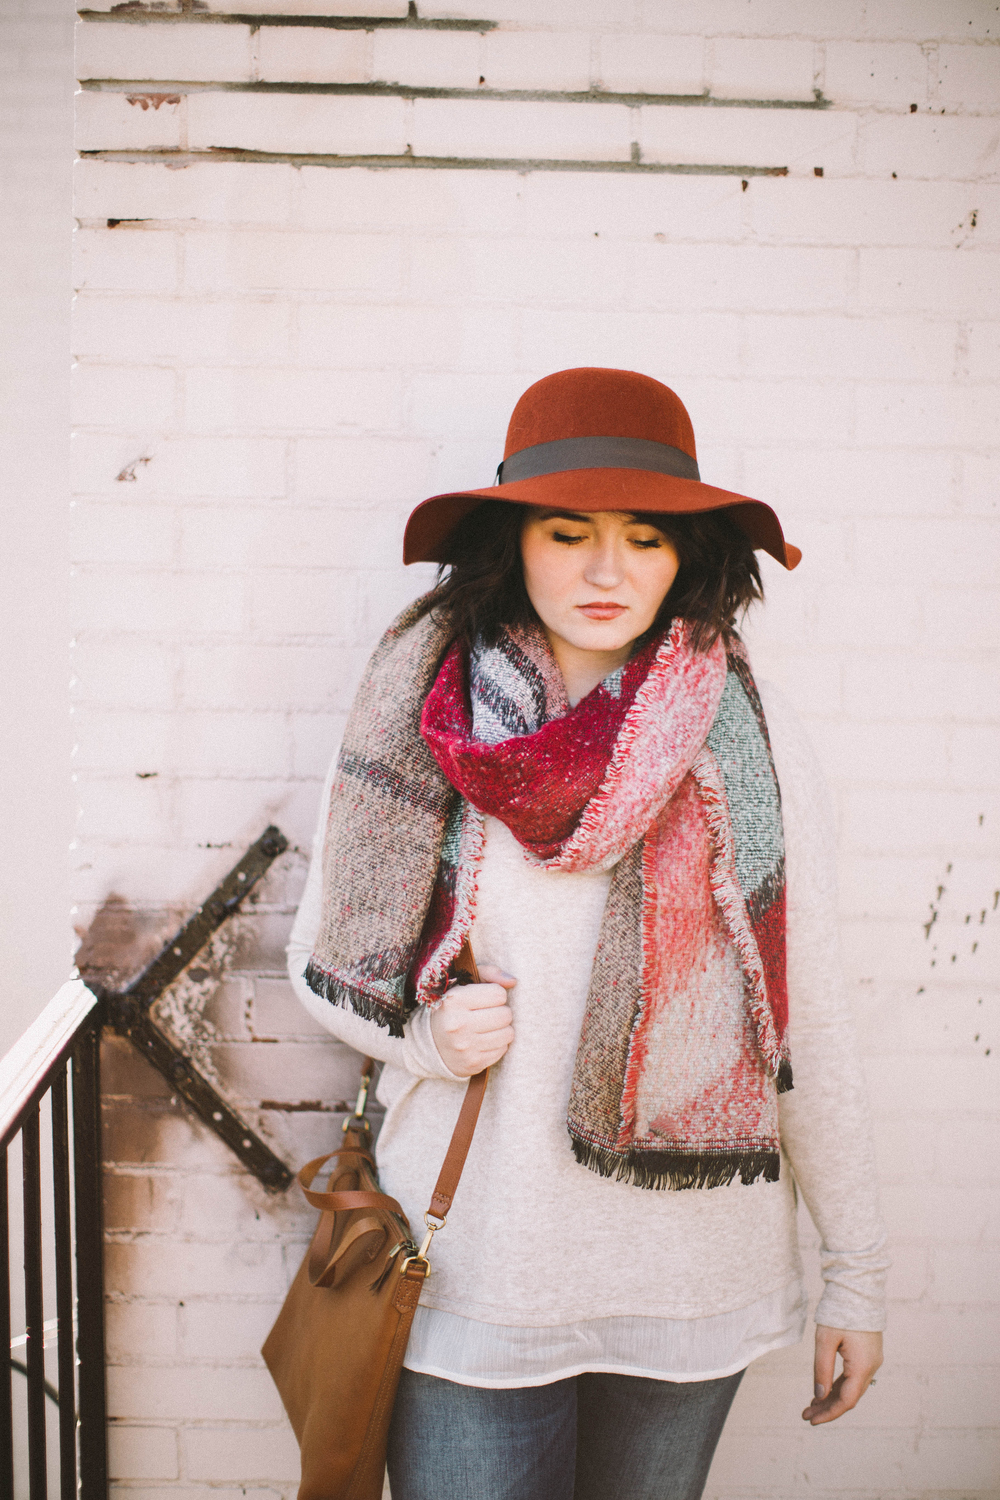 Blanket Scarves + Floppy Hats via www.chelceytate.com